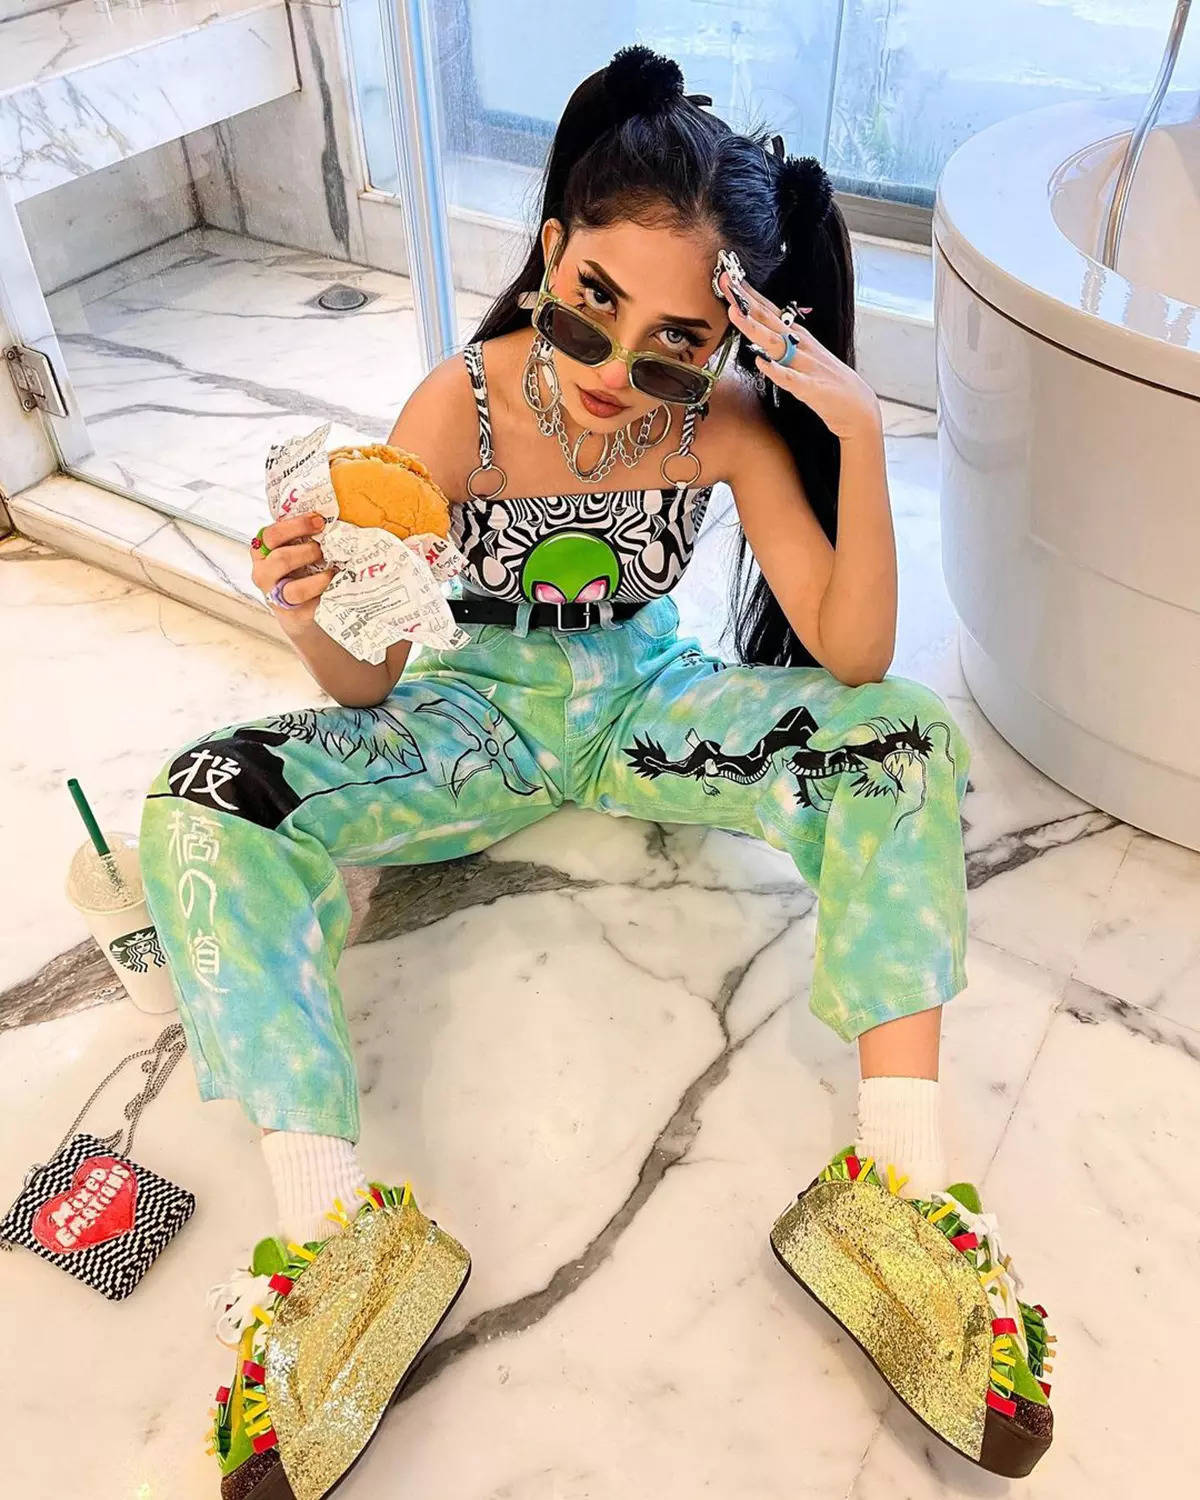 The 22-year-old Krutika is a rising star on social media for her fashionable and unique outfits